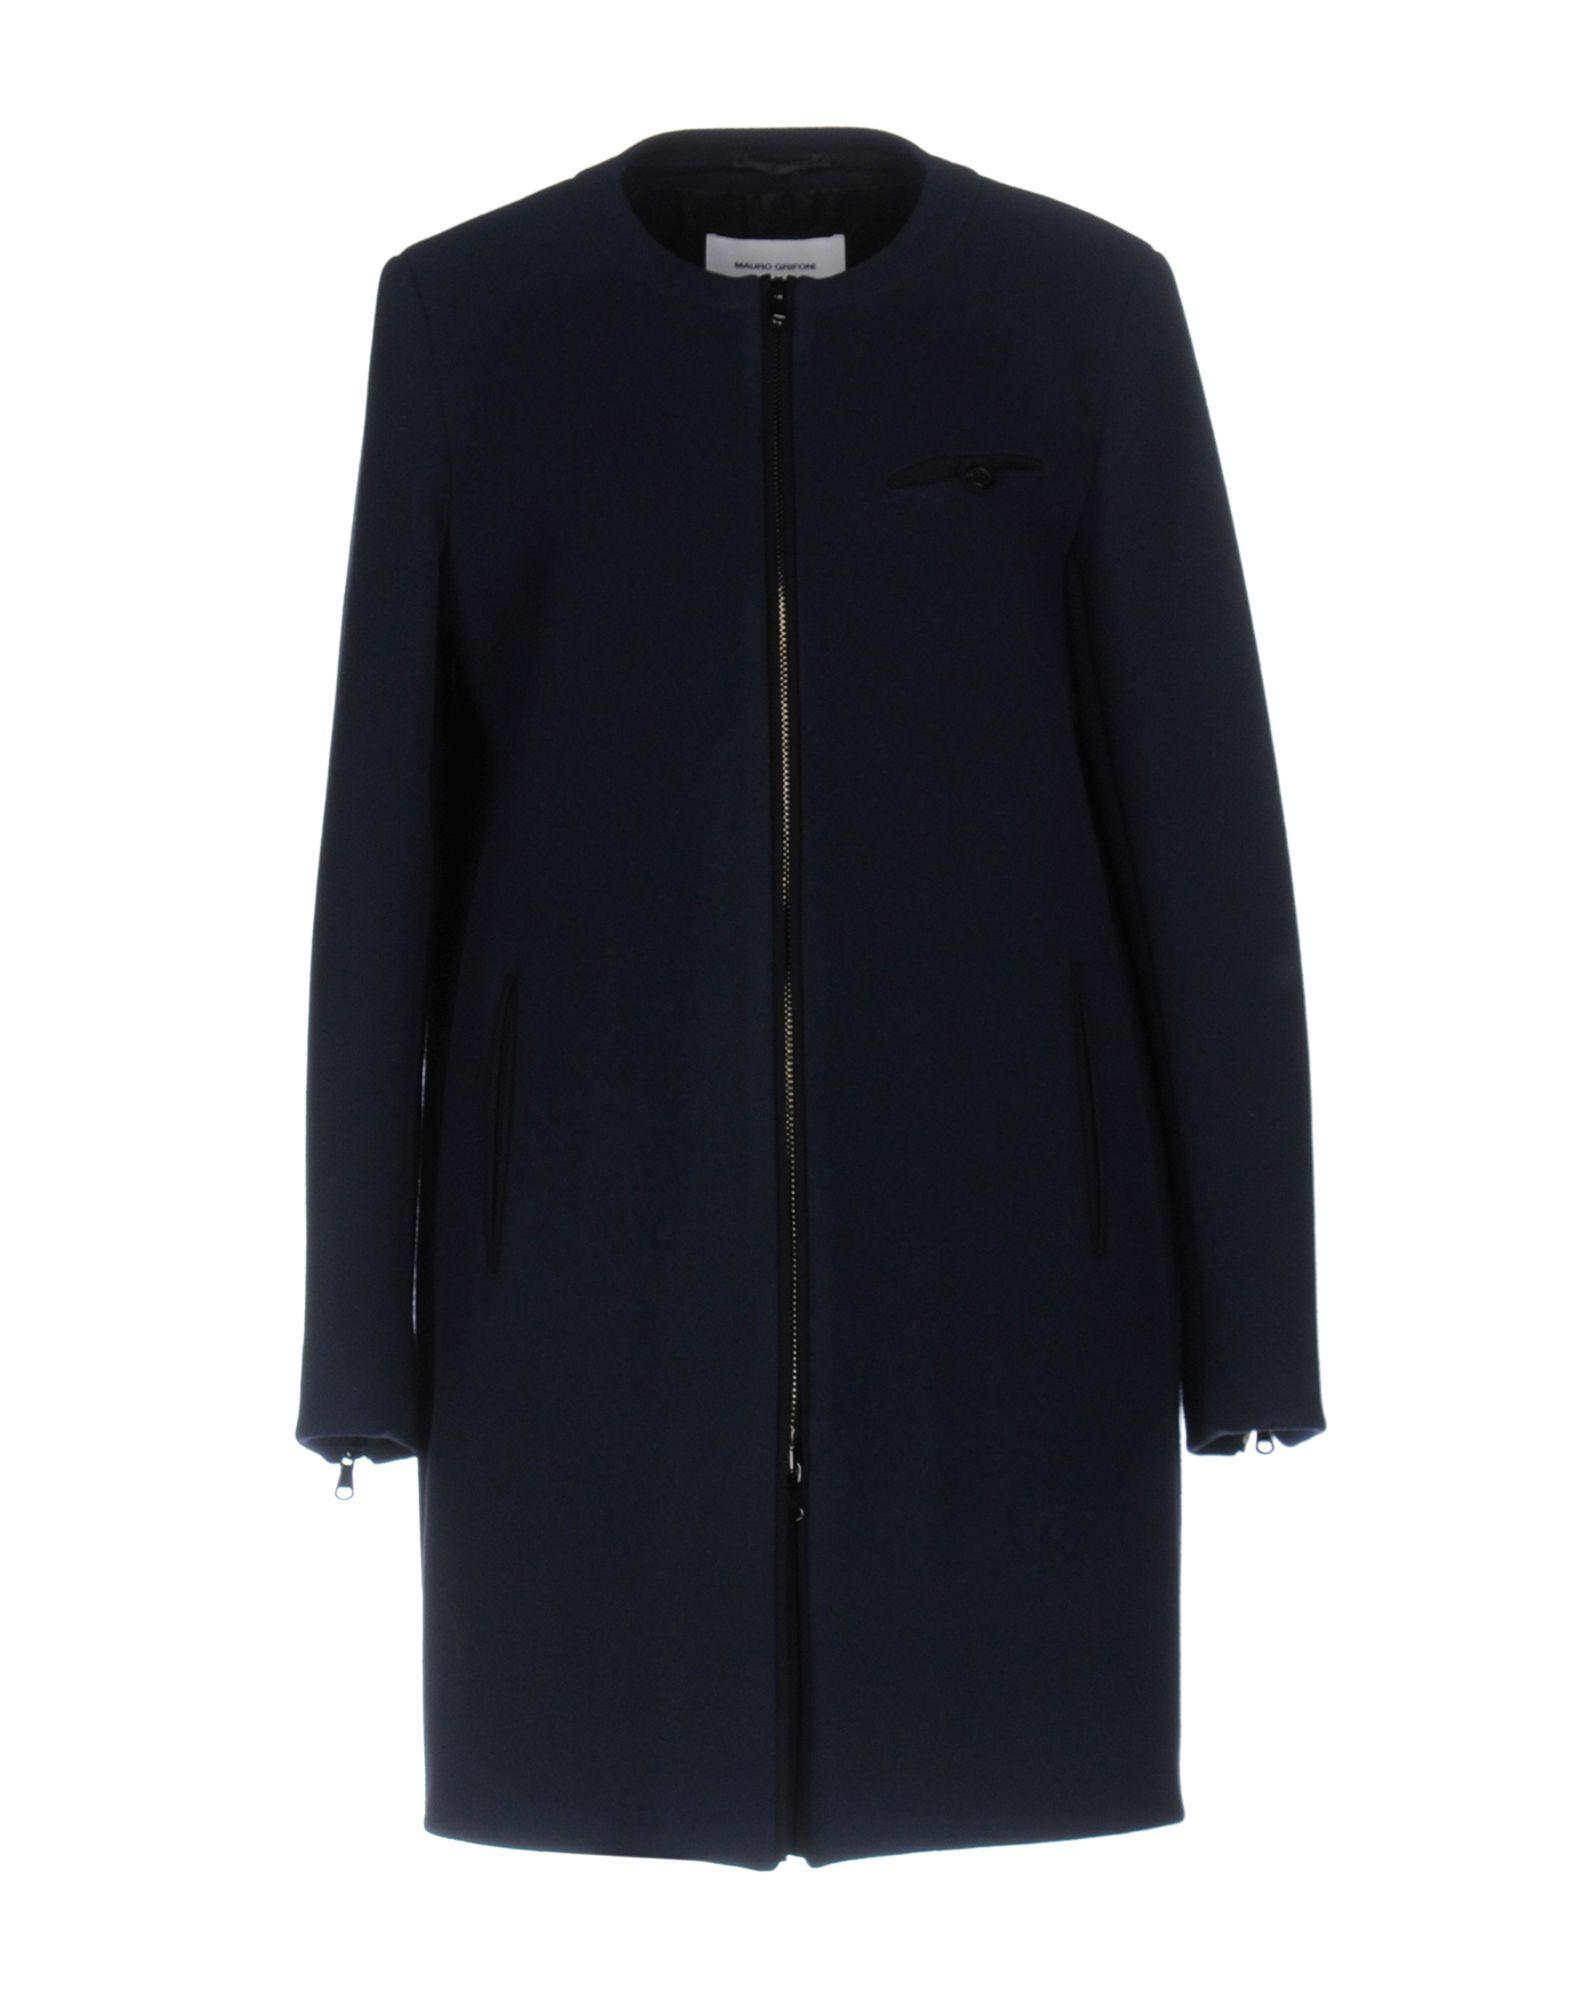 Mauro Grifoni Coat In Dark Blue